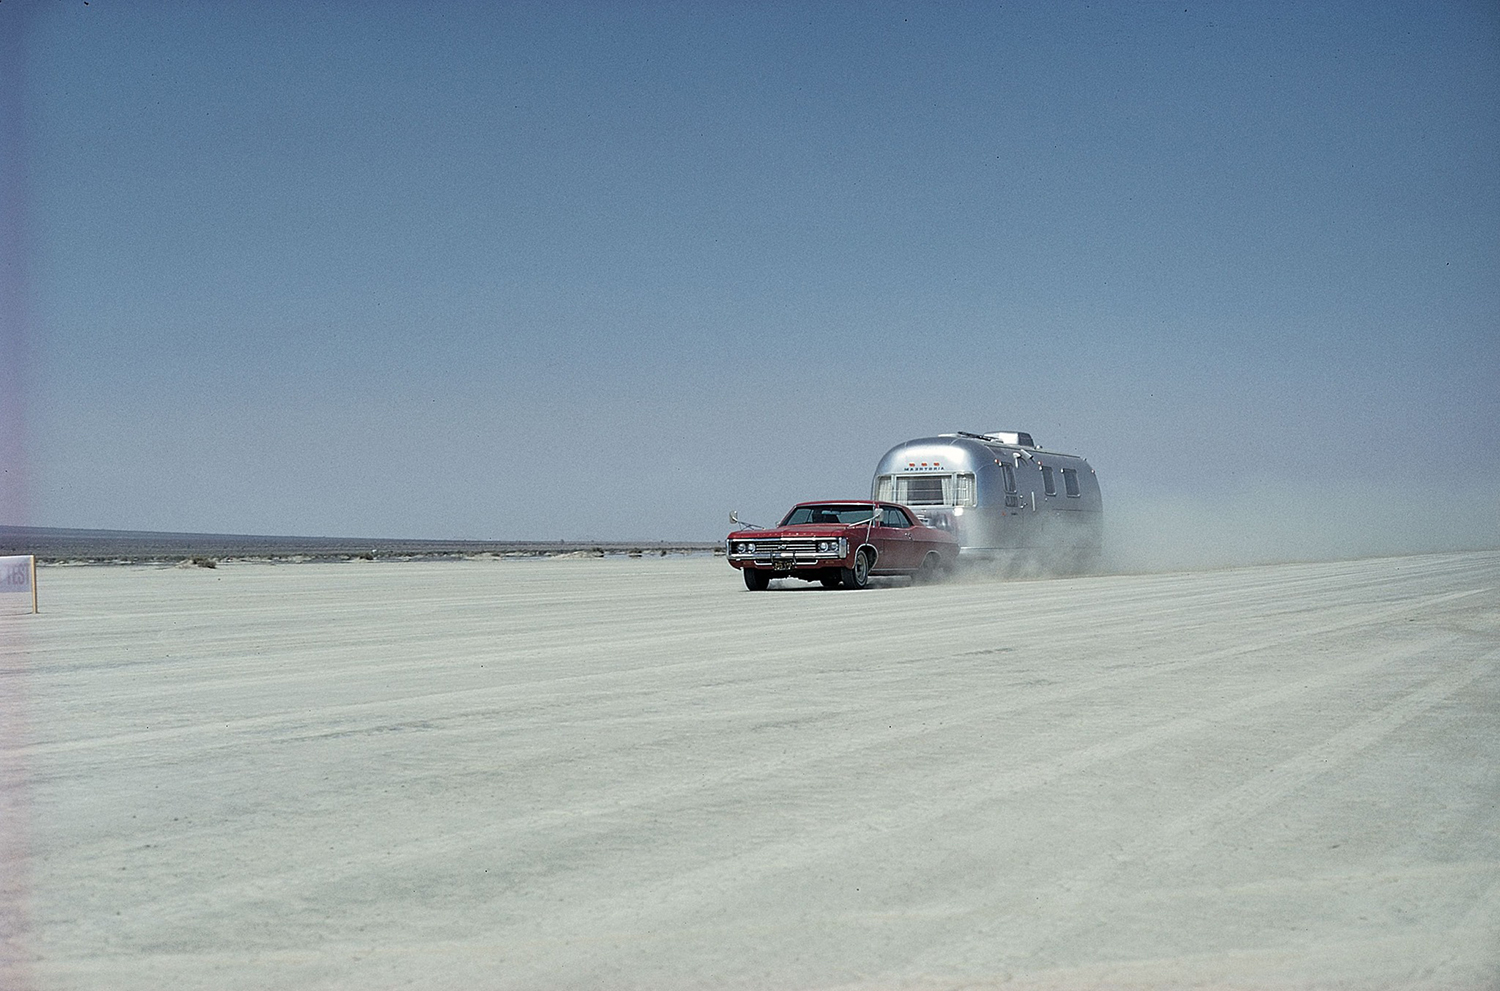 Vintage airstream being towed by a car